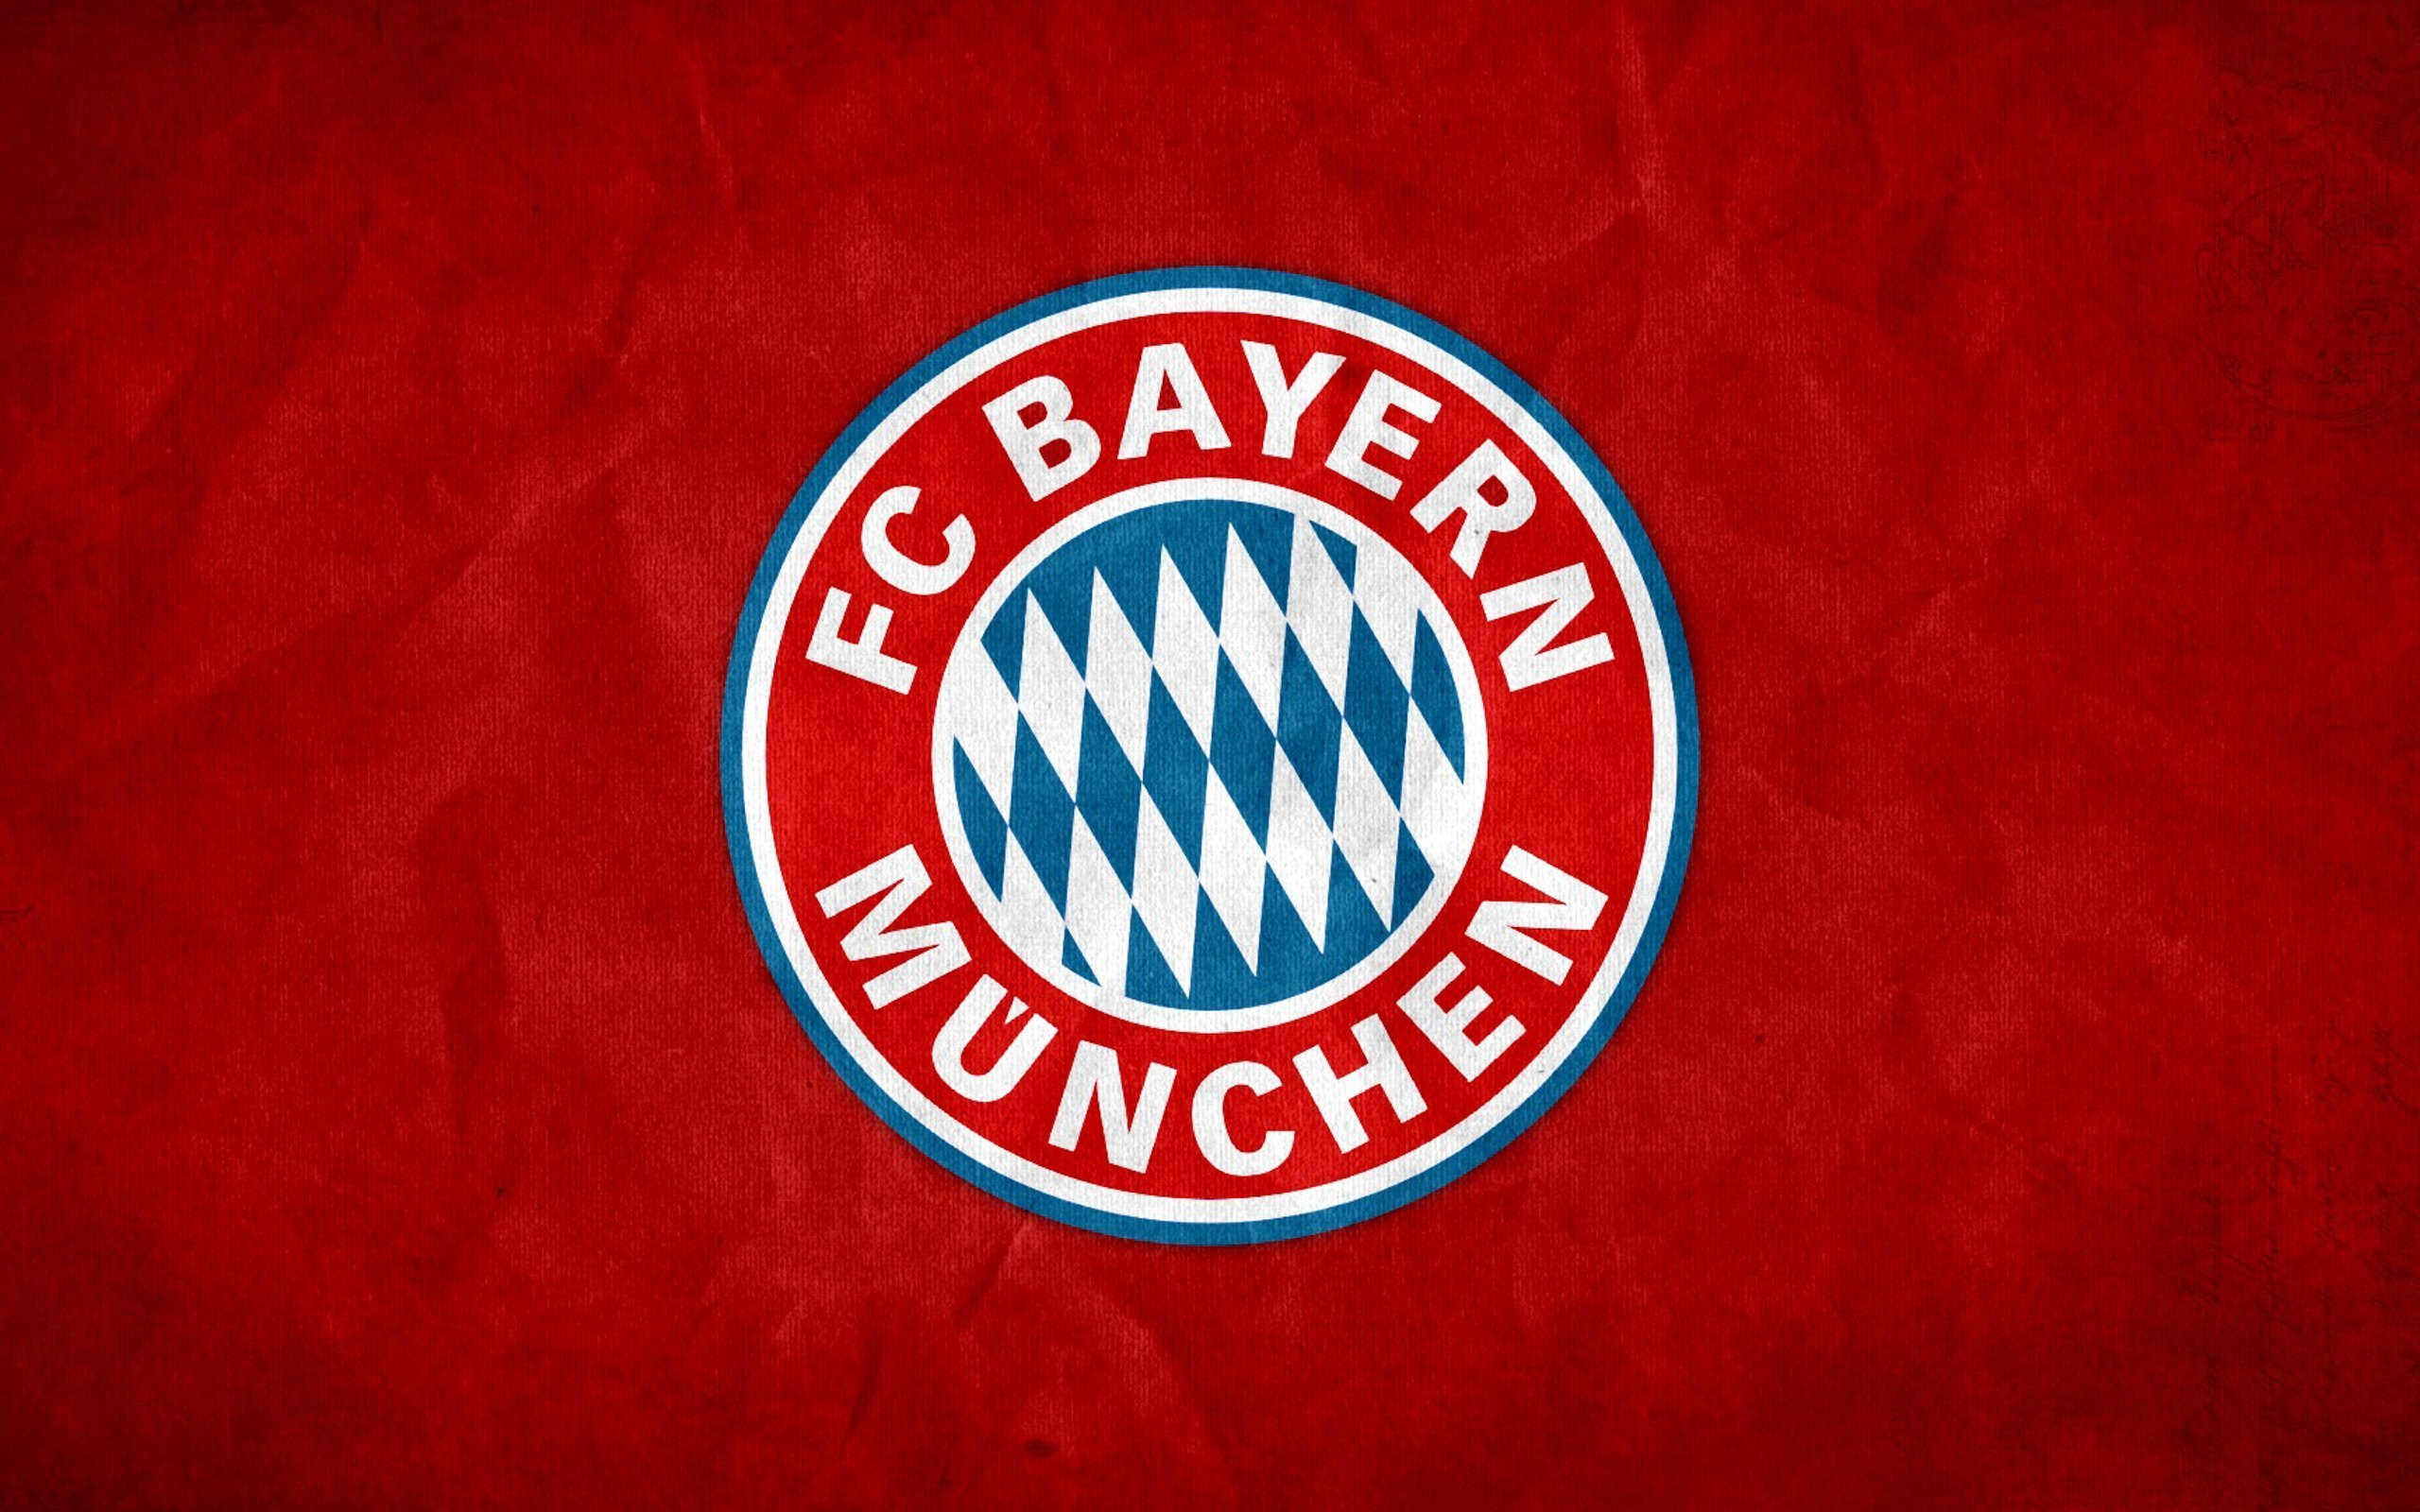 bayern munich wallpapers in hd 4k and wide sizes